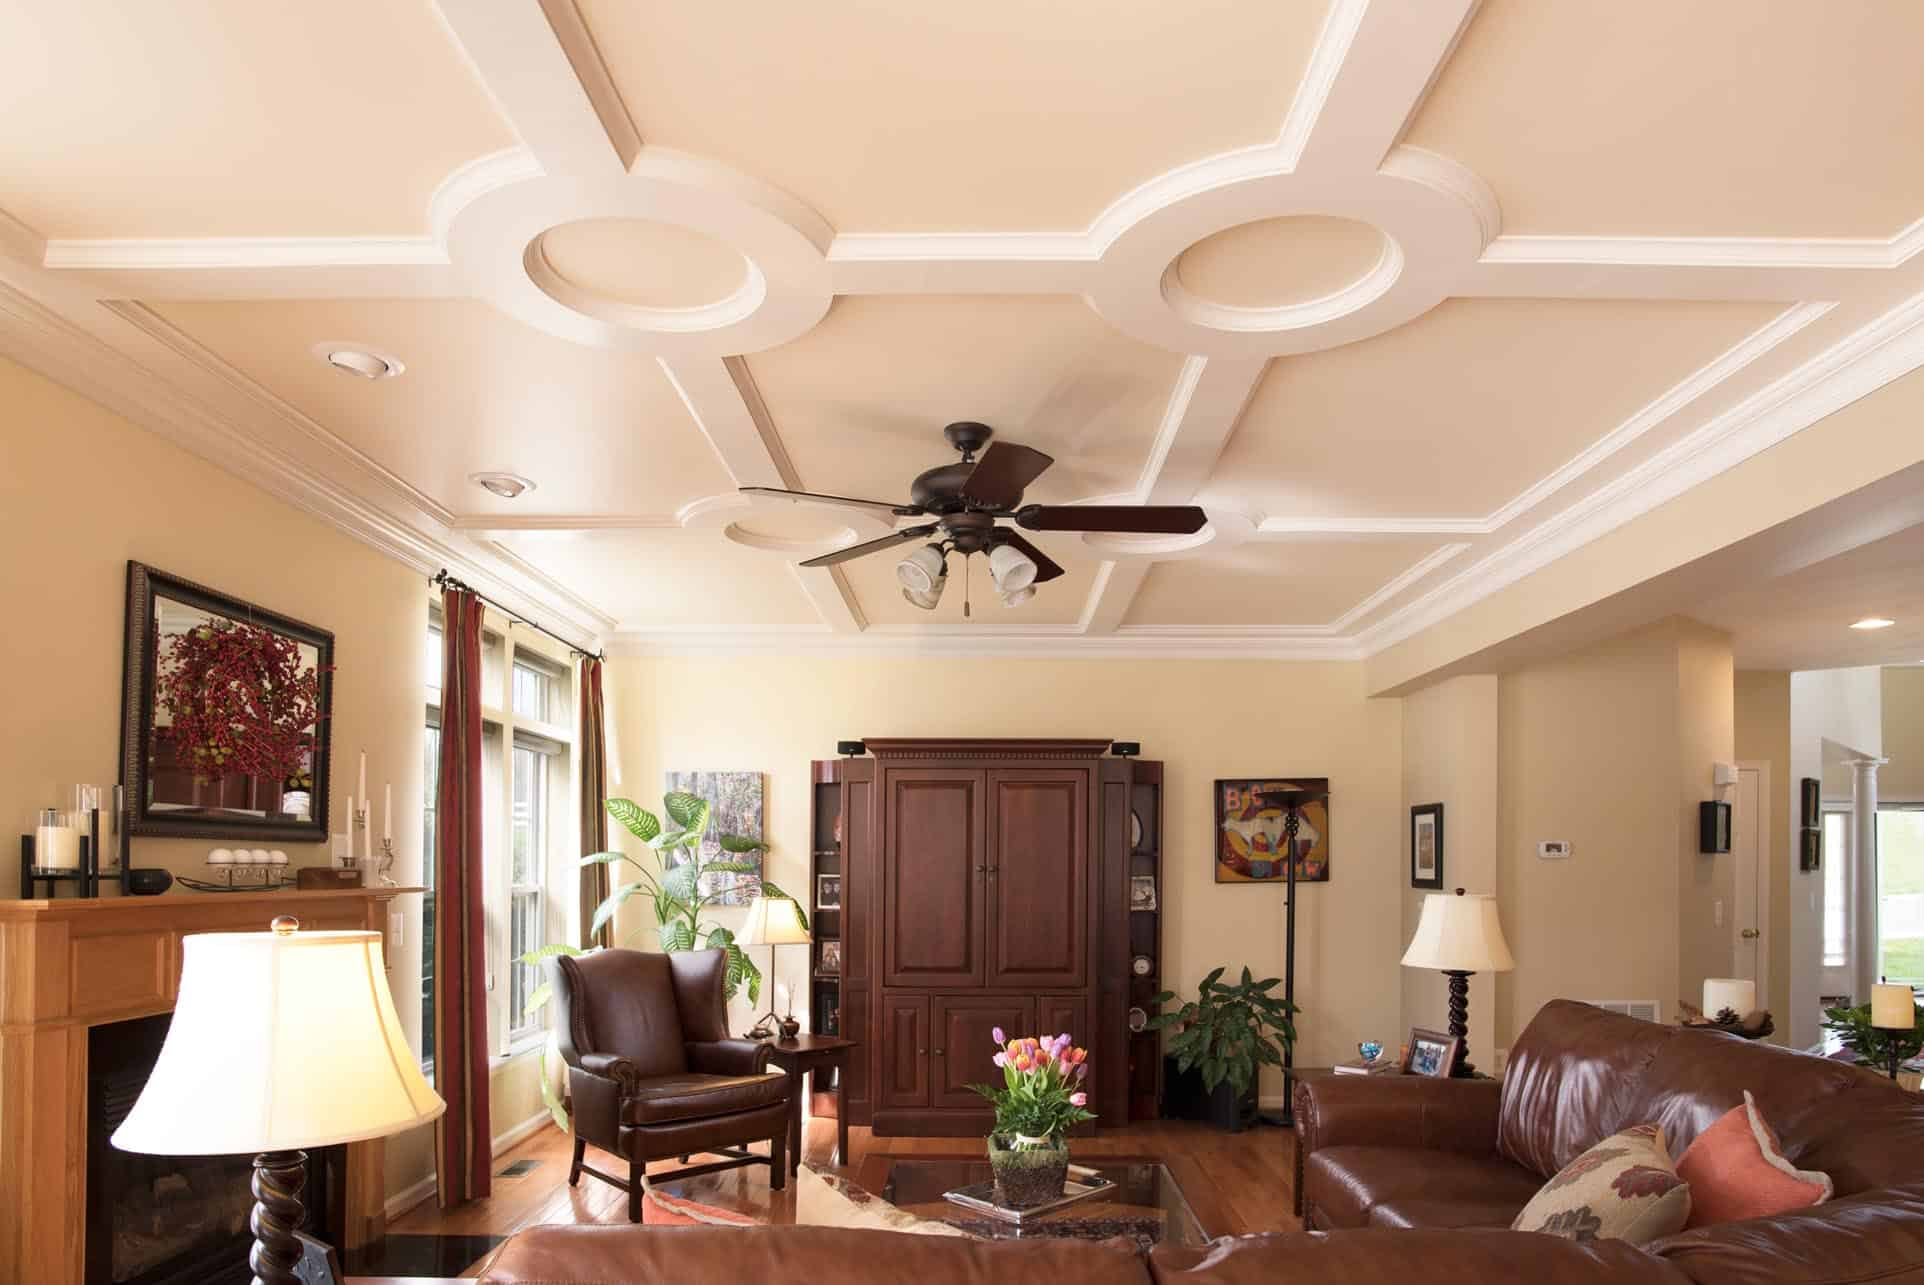 How to build a coffered ceiling -  Coffered Ceiling Coffered Ceilings Ceiling Treatment Ceiling Design Ceiling Panel Faux